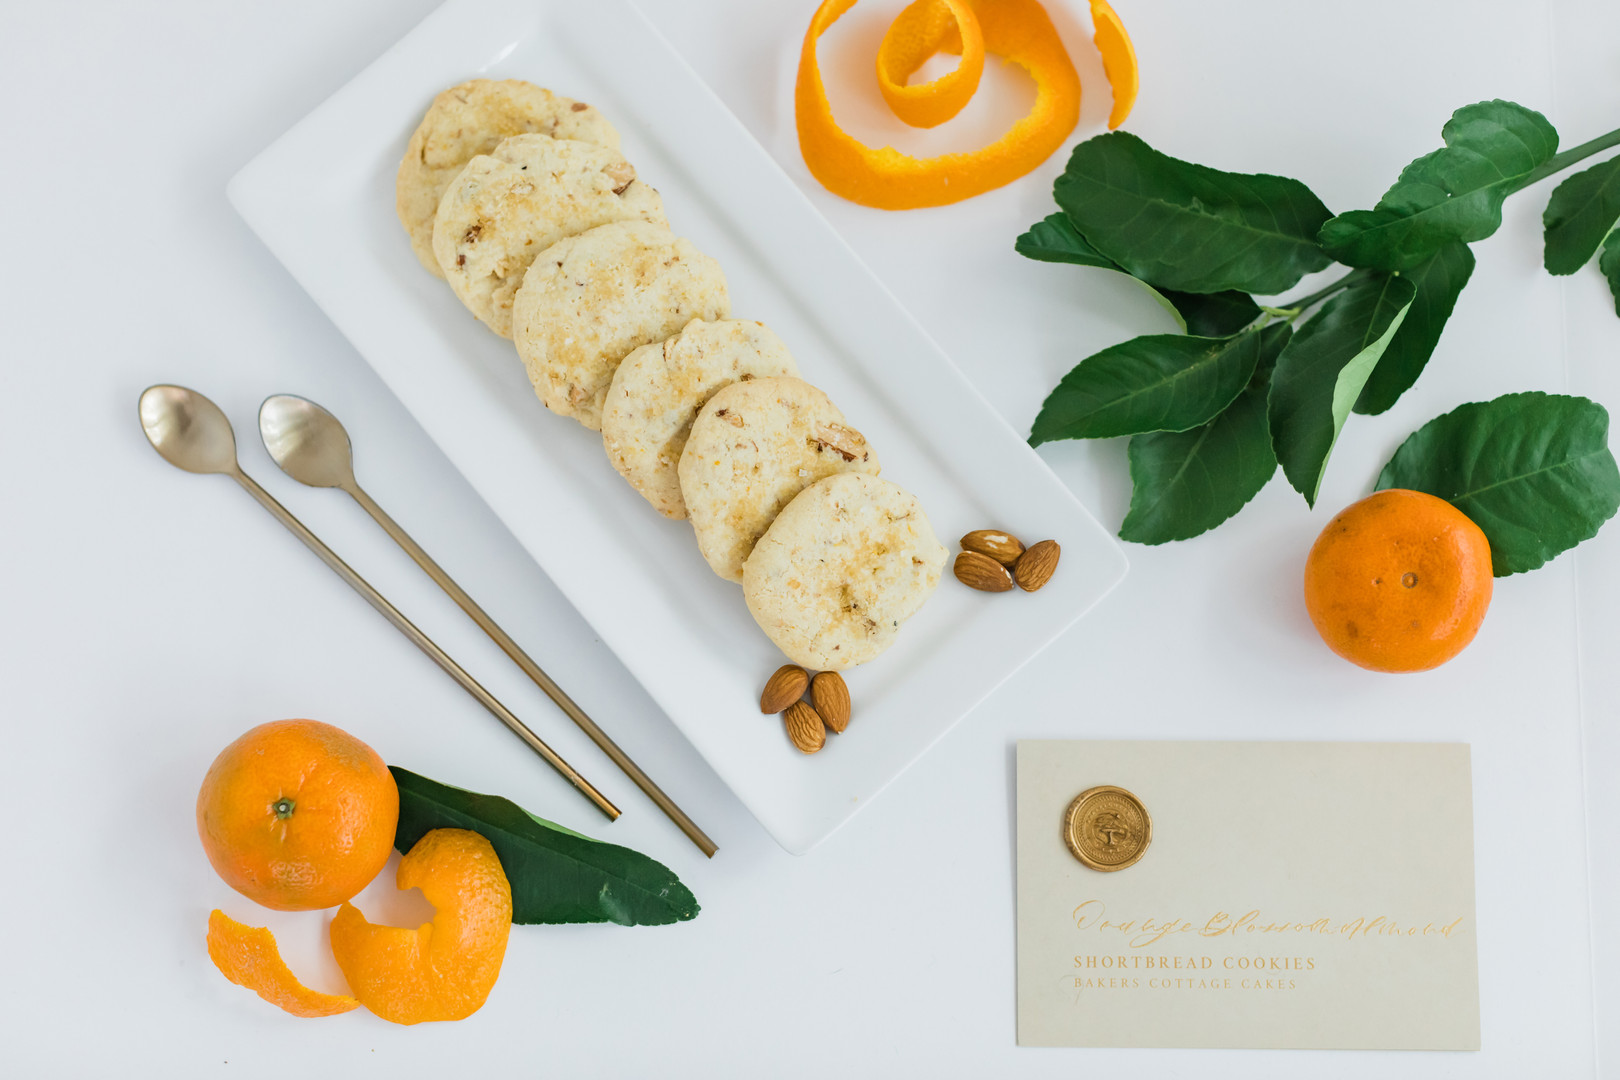 Orange Blossom Almond Short Bread Cookie